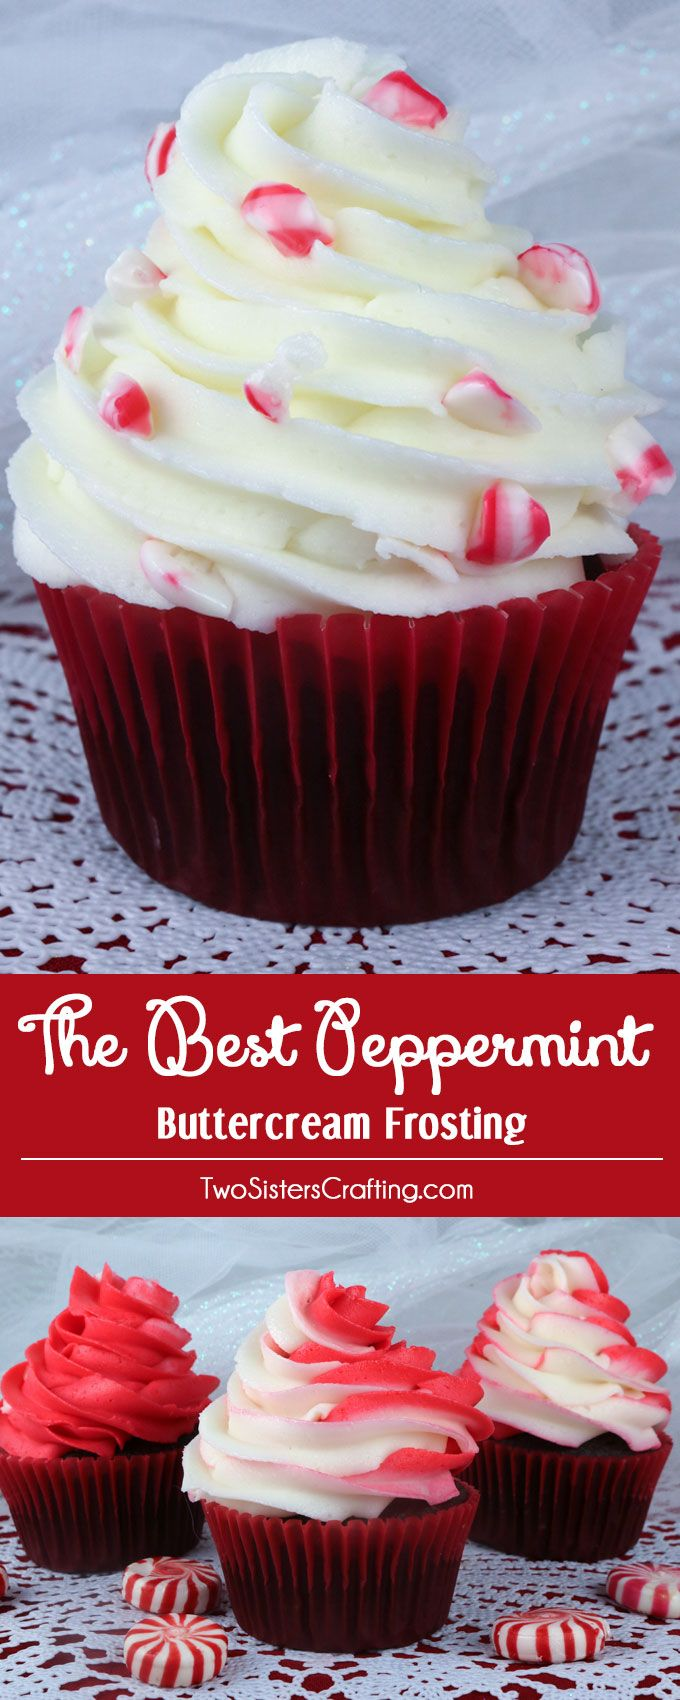 The Best Peppermint Buttercream Frosting. We think it tastes just like a butter mi